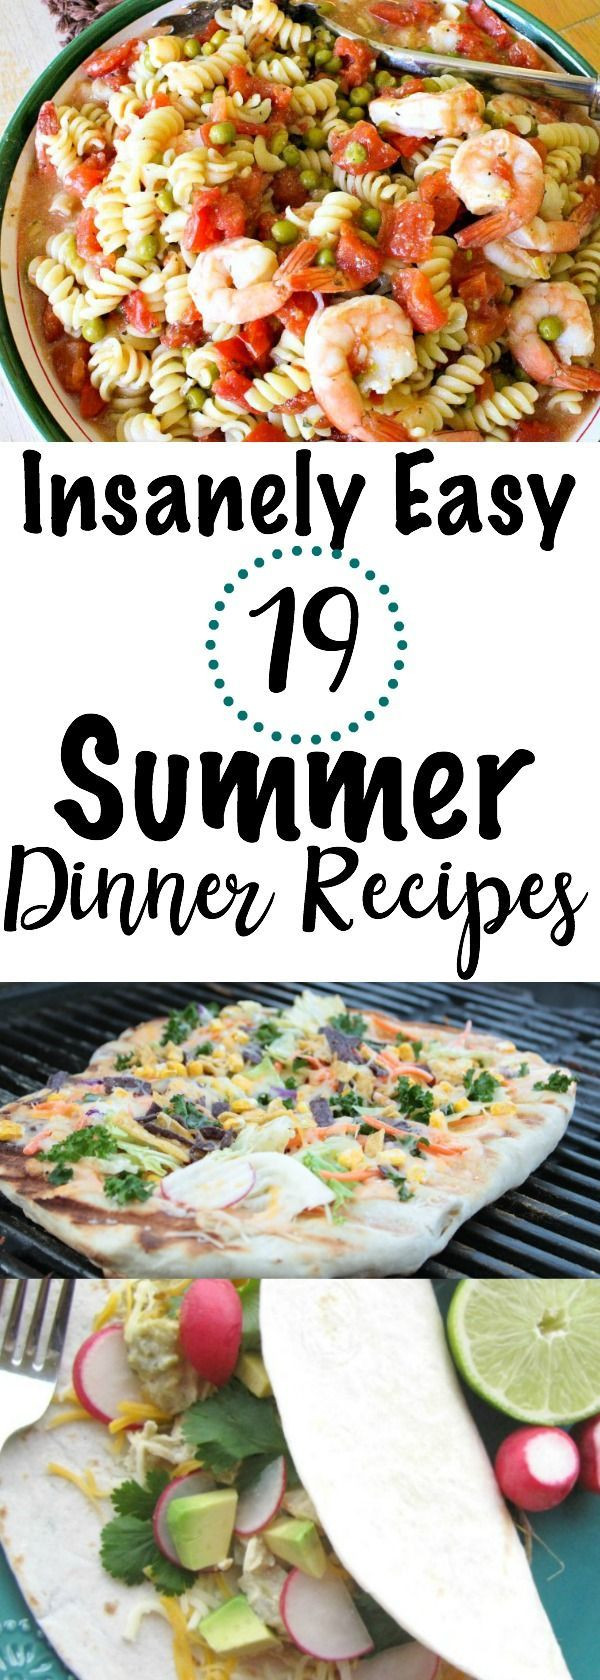 Simple Summer Dinners  19 Insanely Easy Summer Dinner Recipes